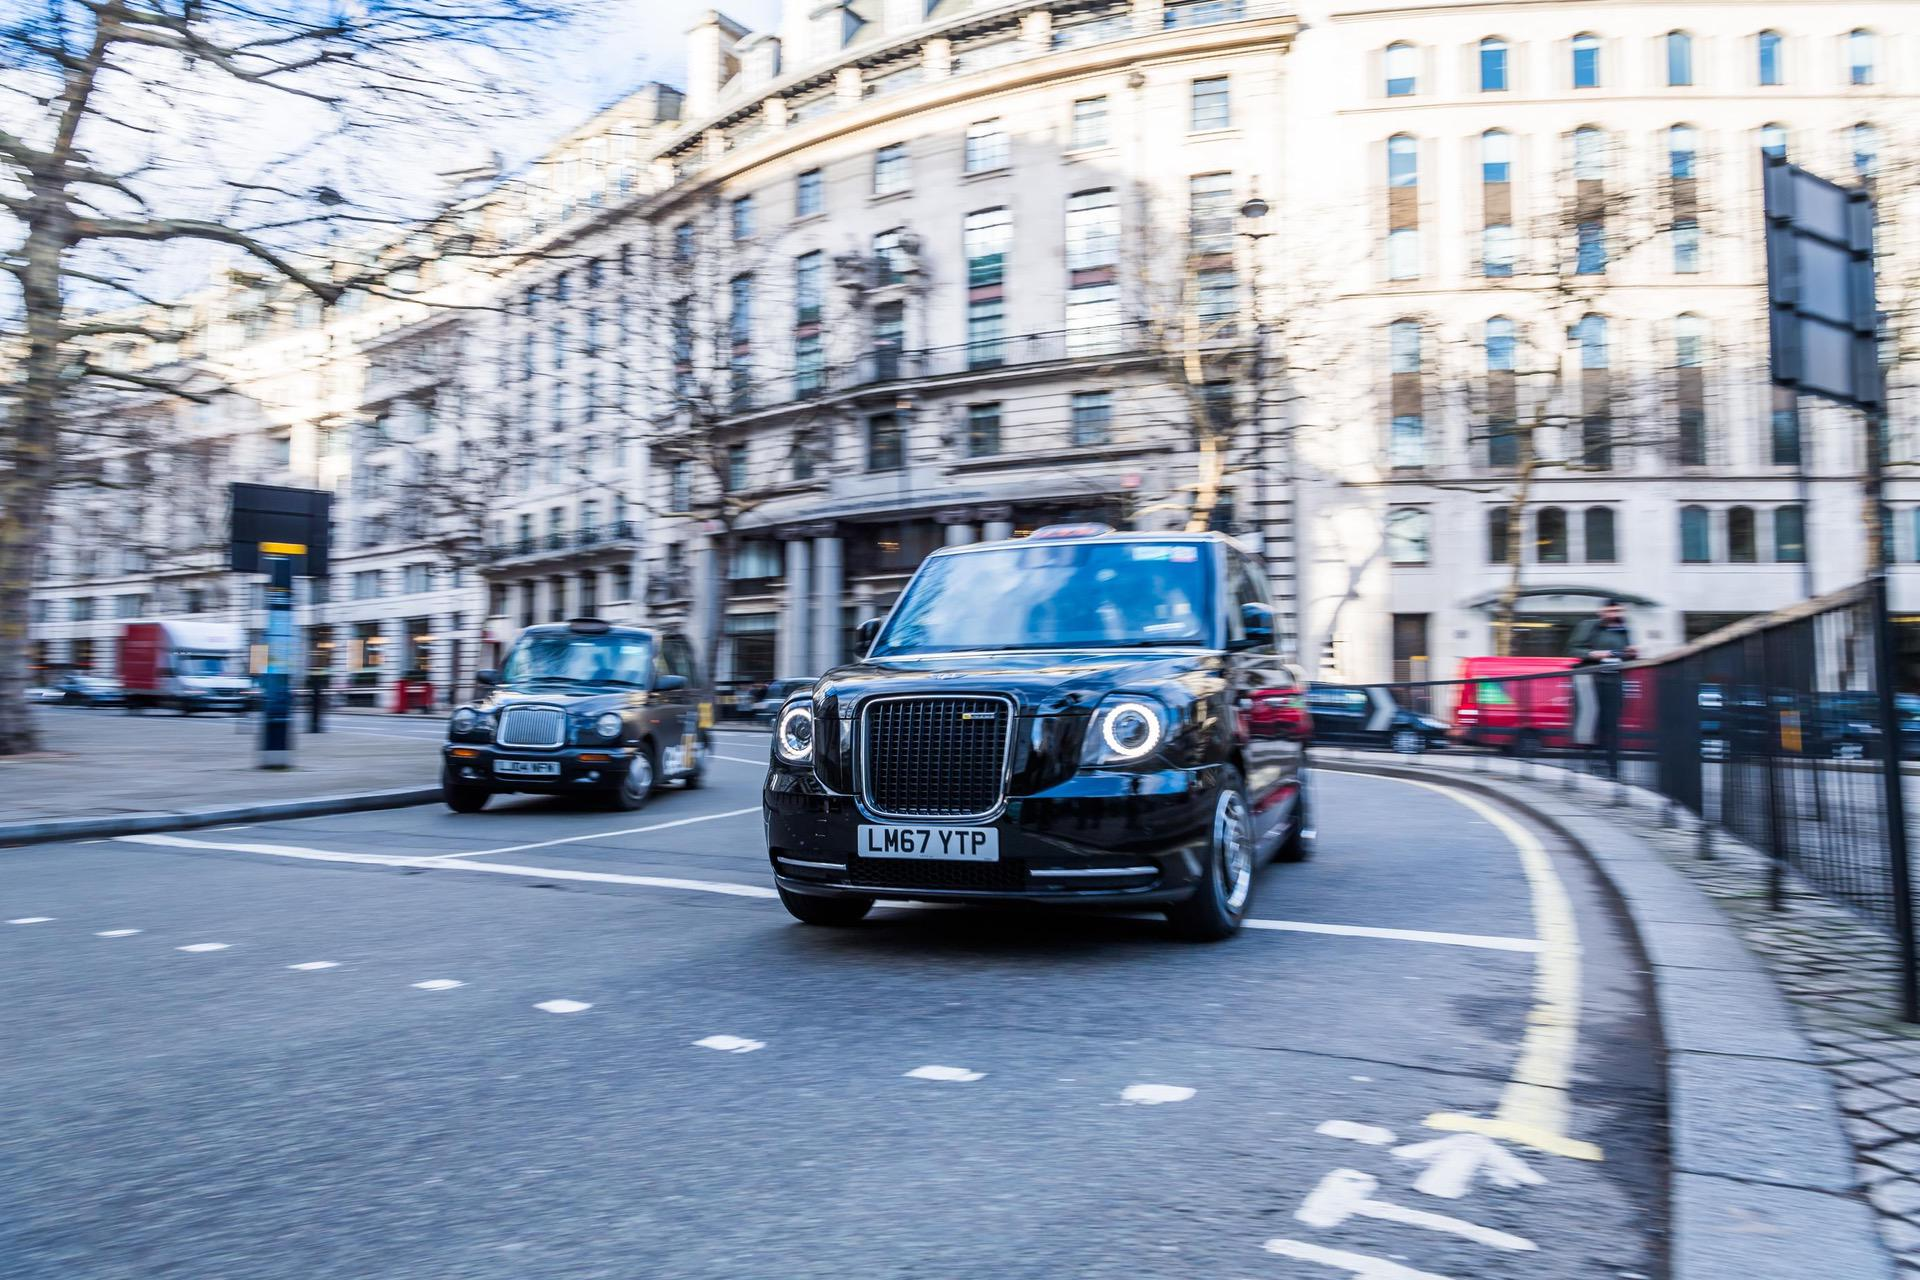 London_Taxi_0006